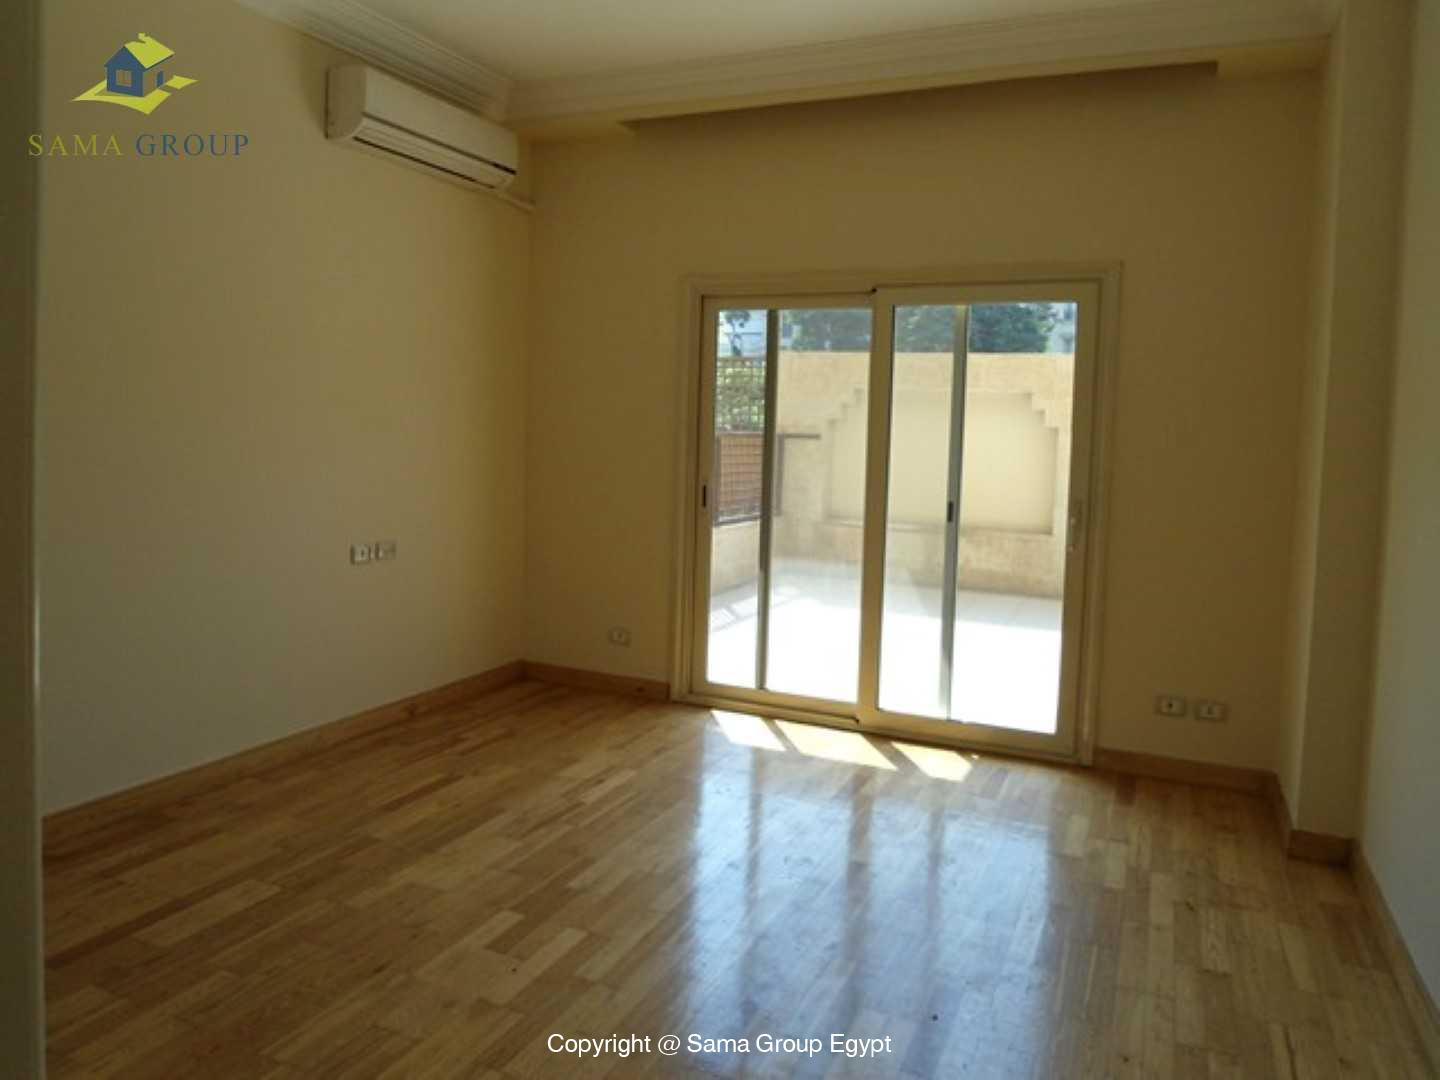 Ground Floor Duplex With Pool For Rent In Maadi Sarayat,Semi furnished,Ground Floor NO #5